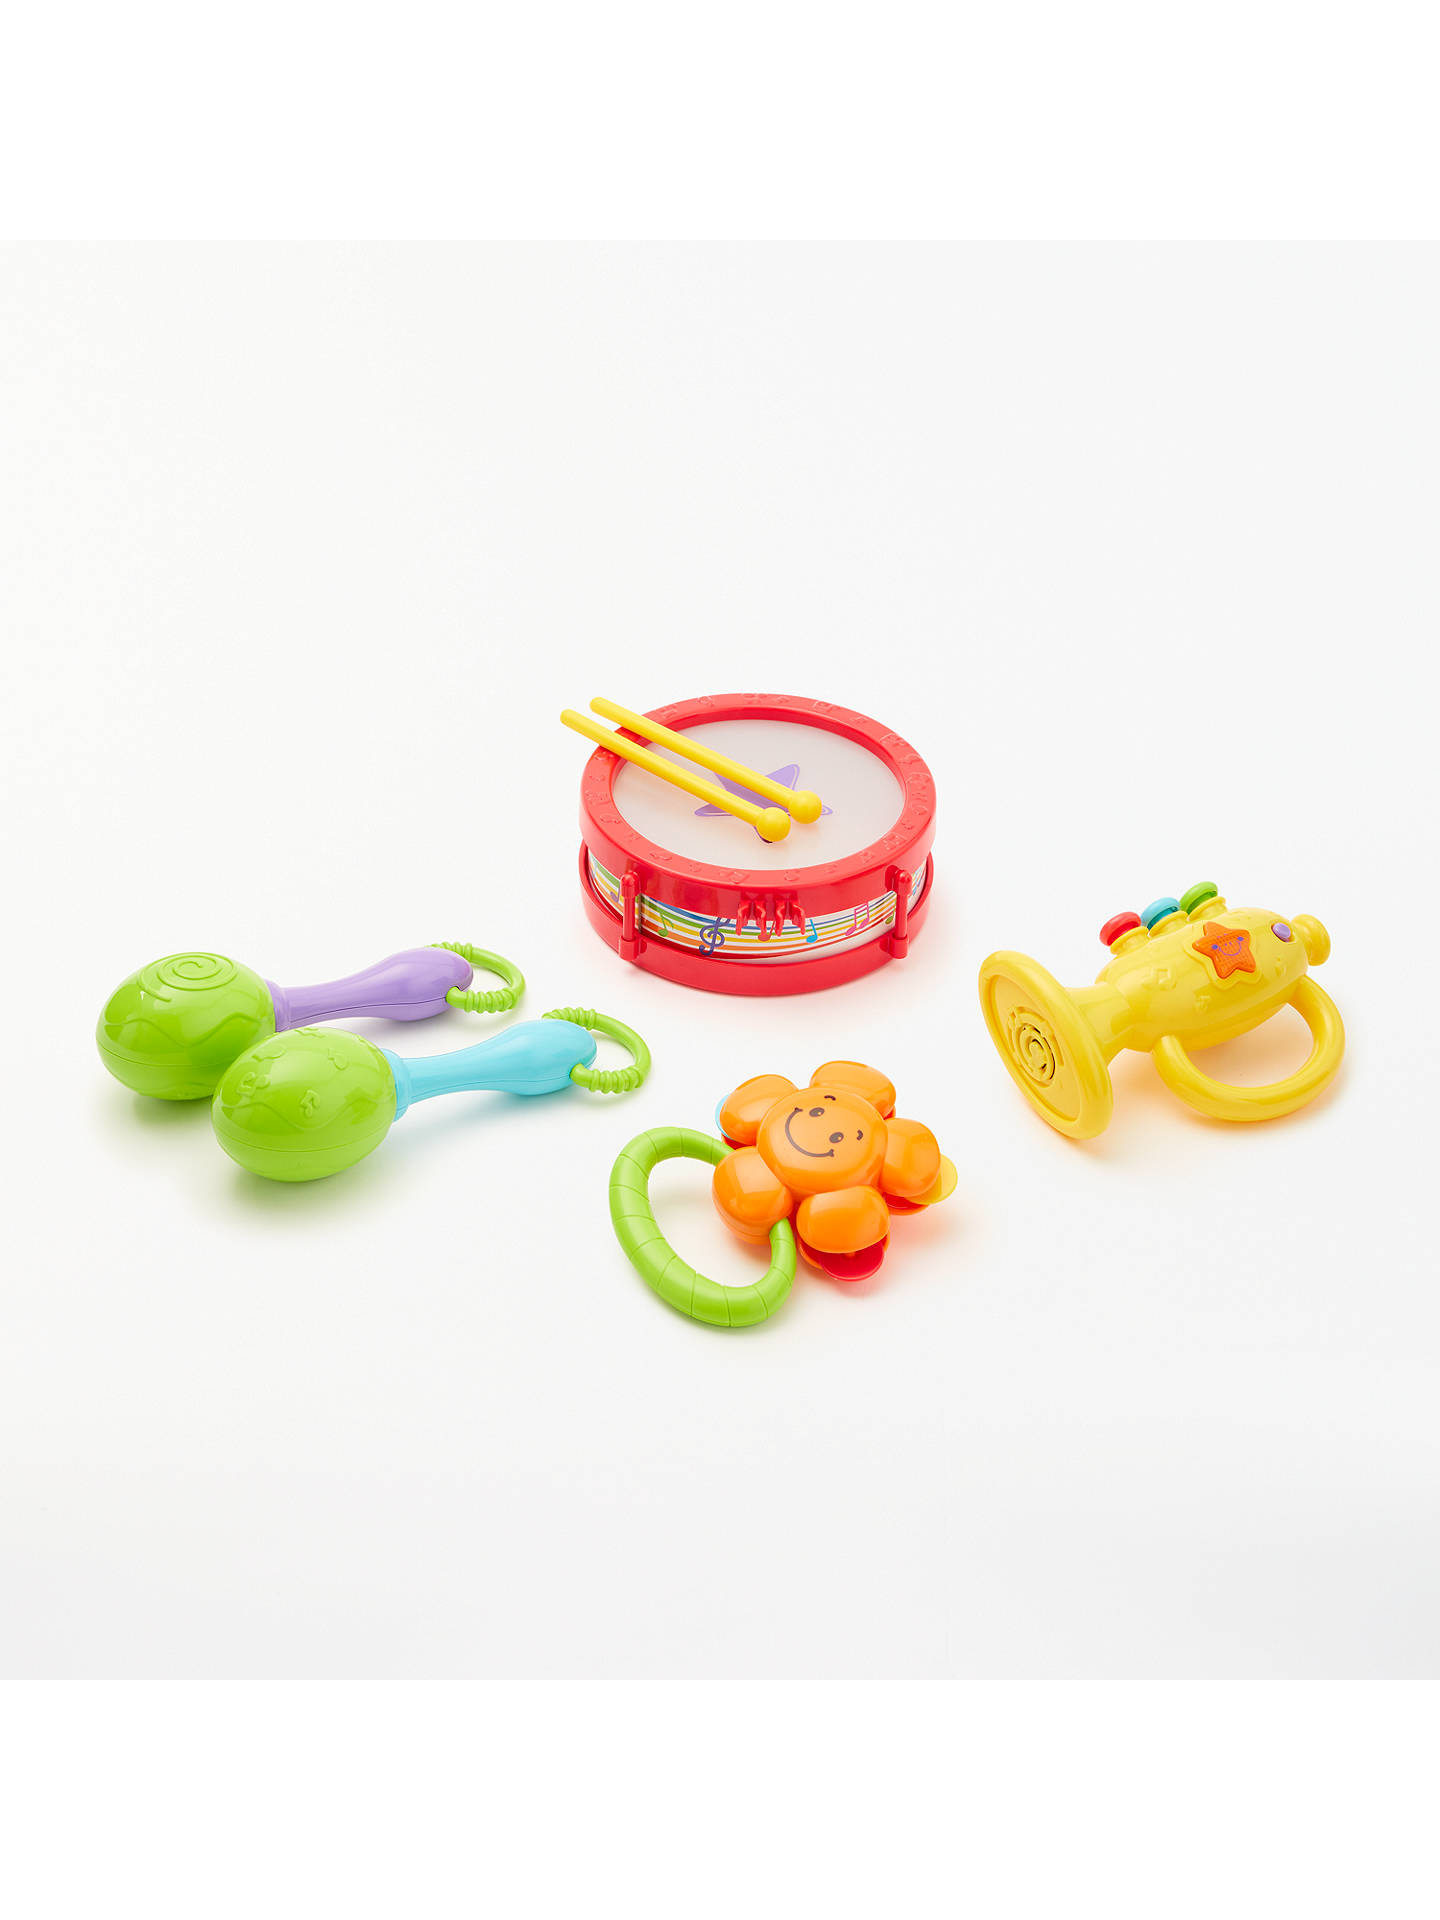 Buy John Lewis & Partners Children's First Band Set and Drum Online at johnlewis.com